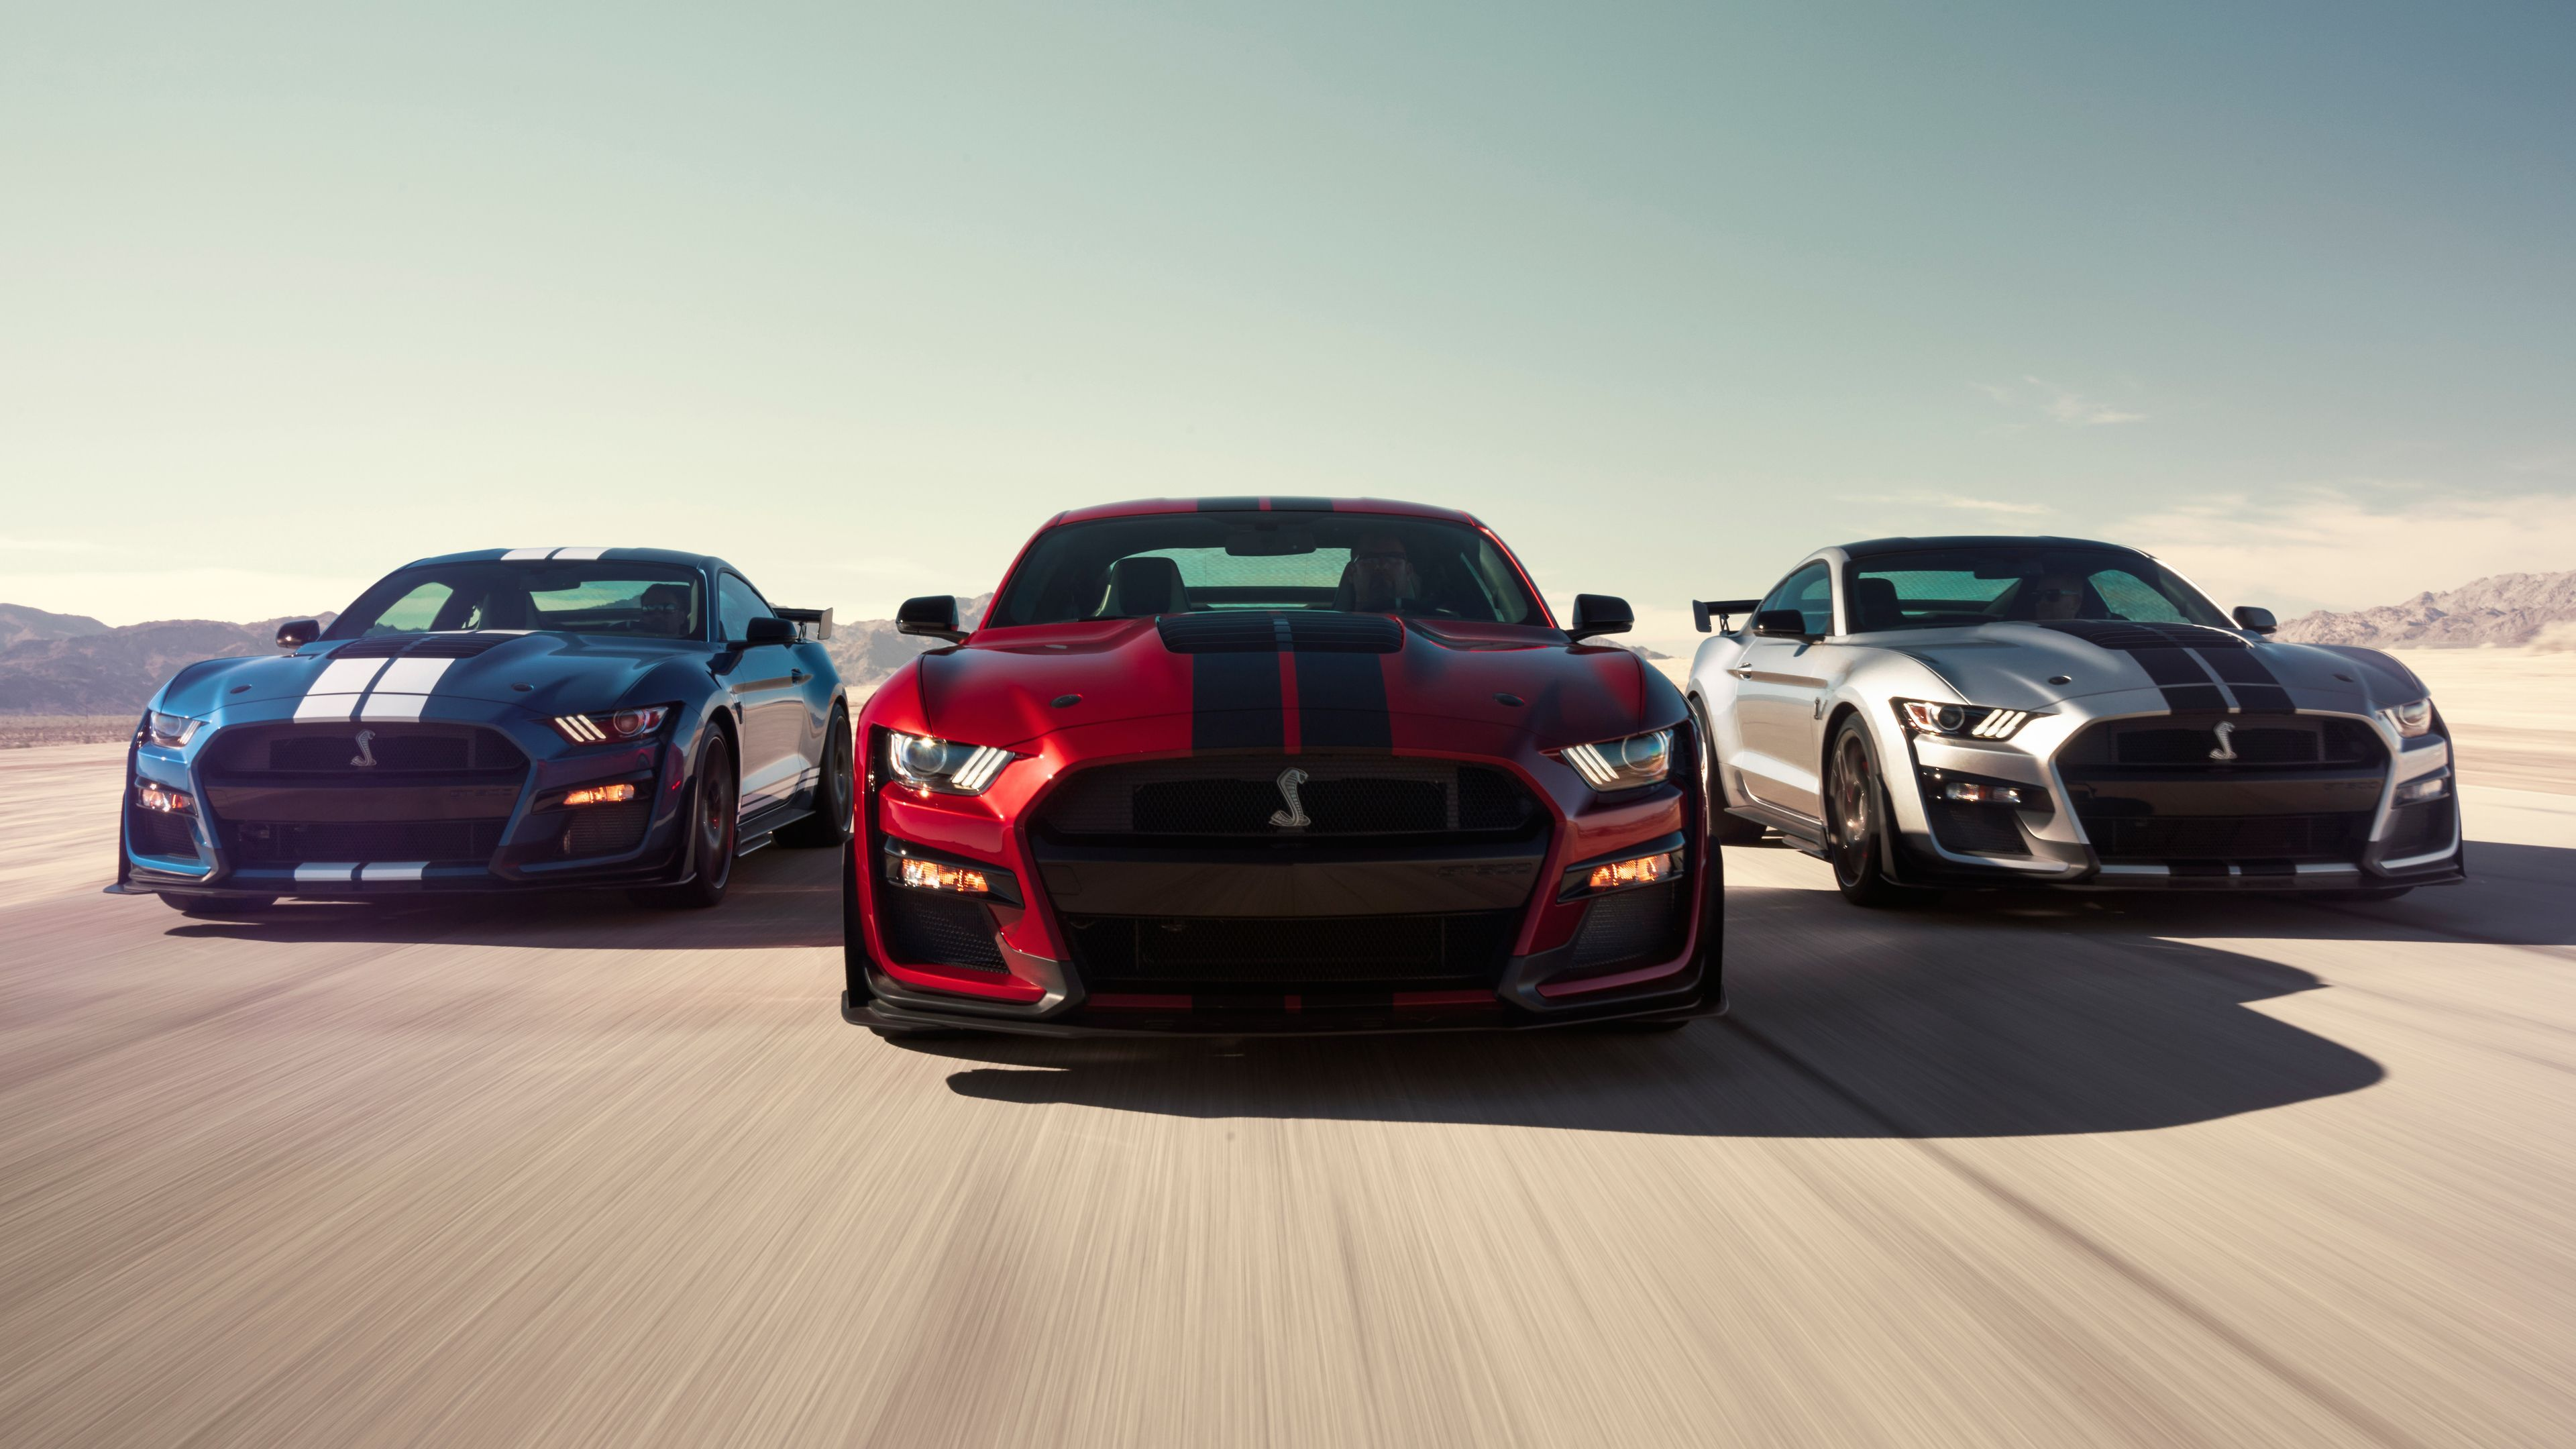 2020 Ford Mustang Shelby GT500 4k shelby wallpapers hd wallpapers 3840x2160